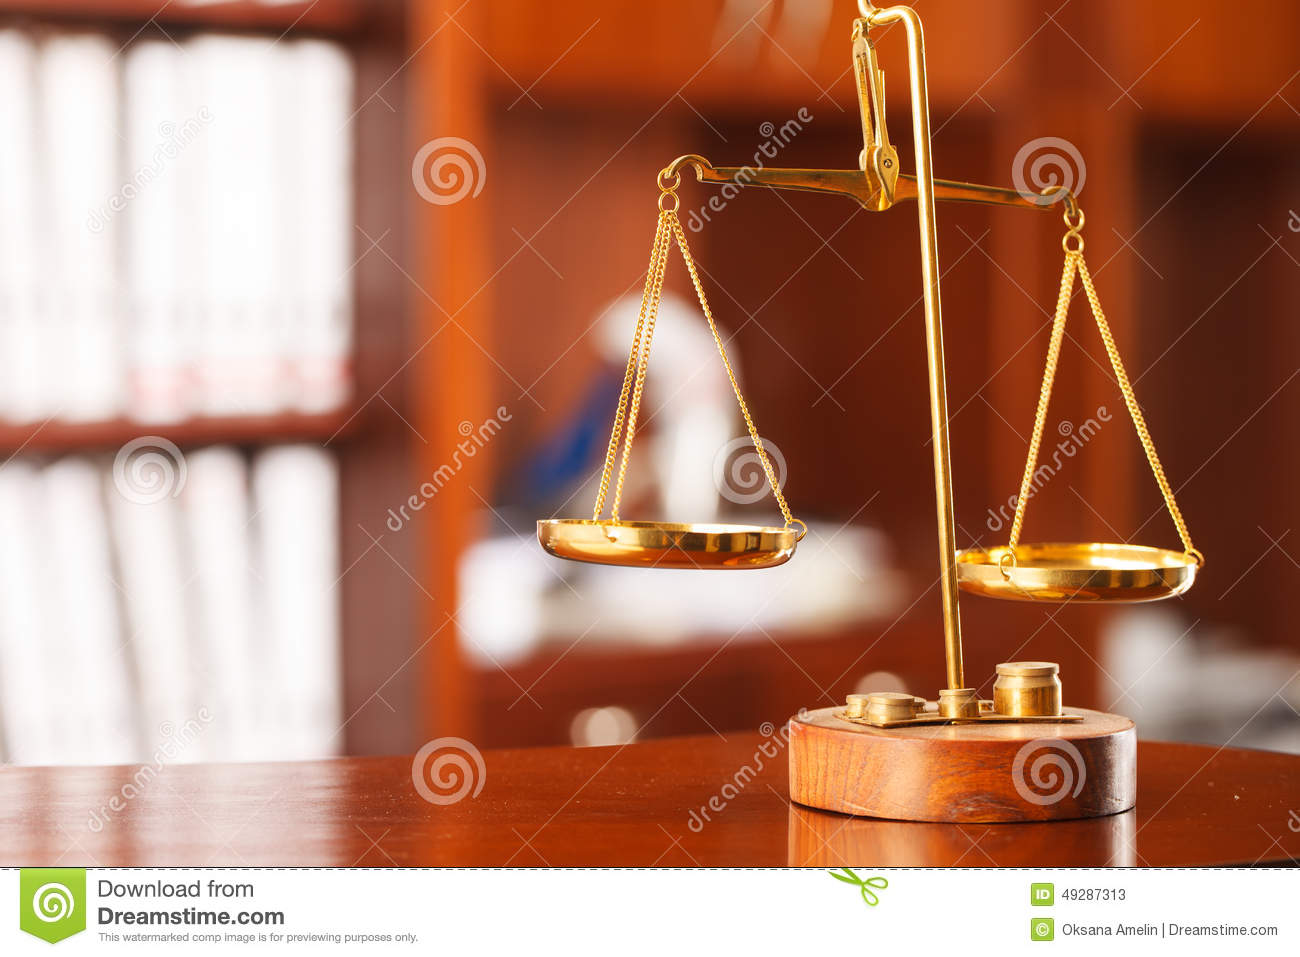 law as an instrument of justice Definition of instrument in the legal dictionary - by free online english dictionary  and encyclopedia what is instrument meaning of instrument as a legal term.